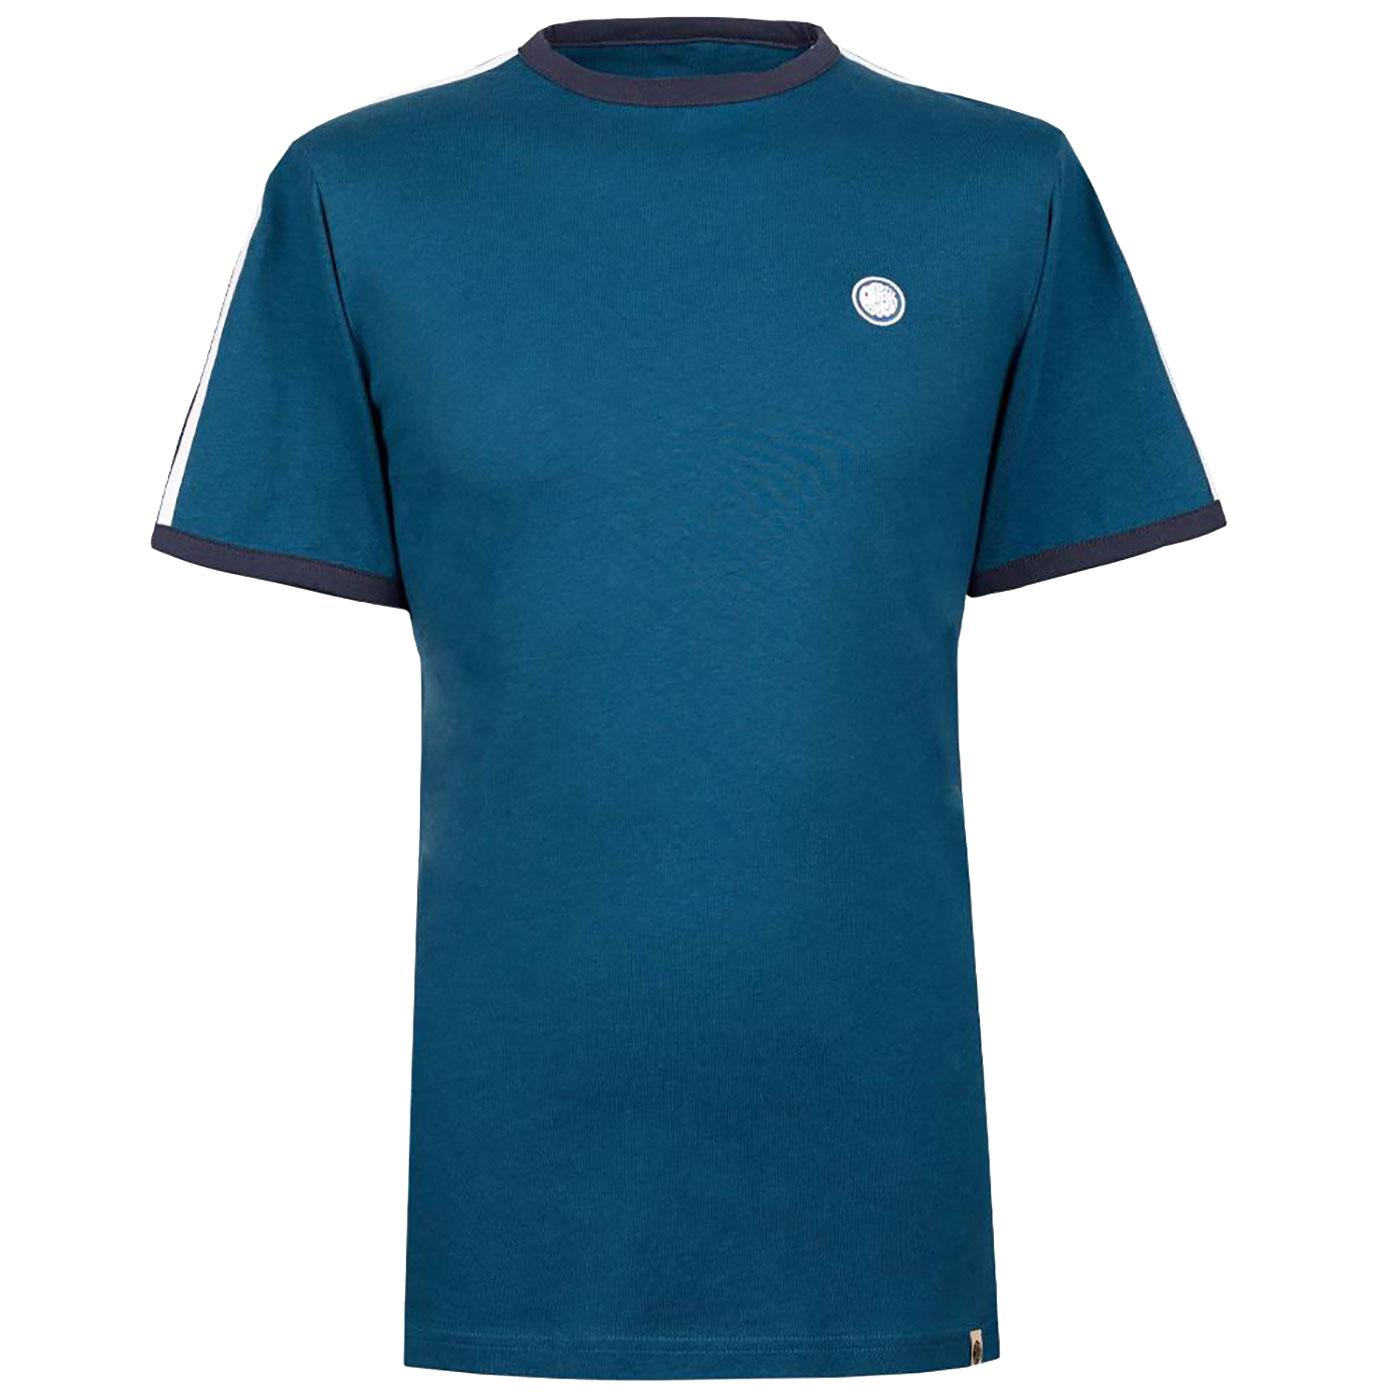 PRETTY GREEN Mens Retro Contrast Sleeve Stripe Tee